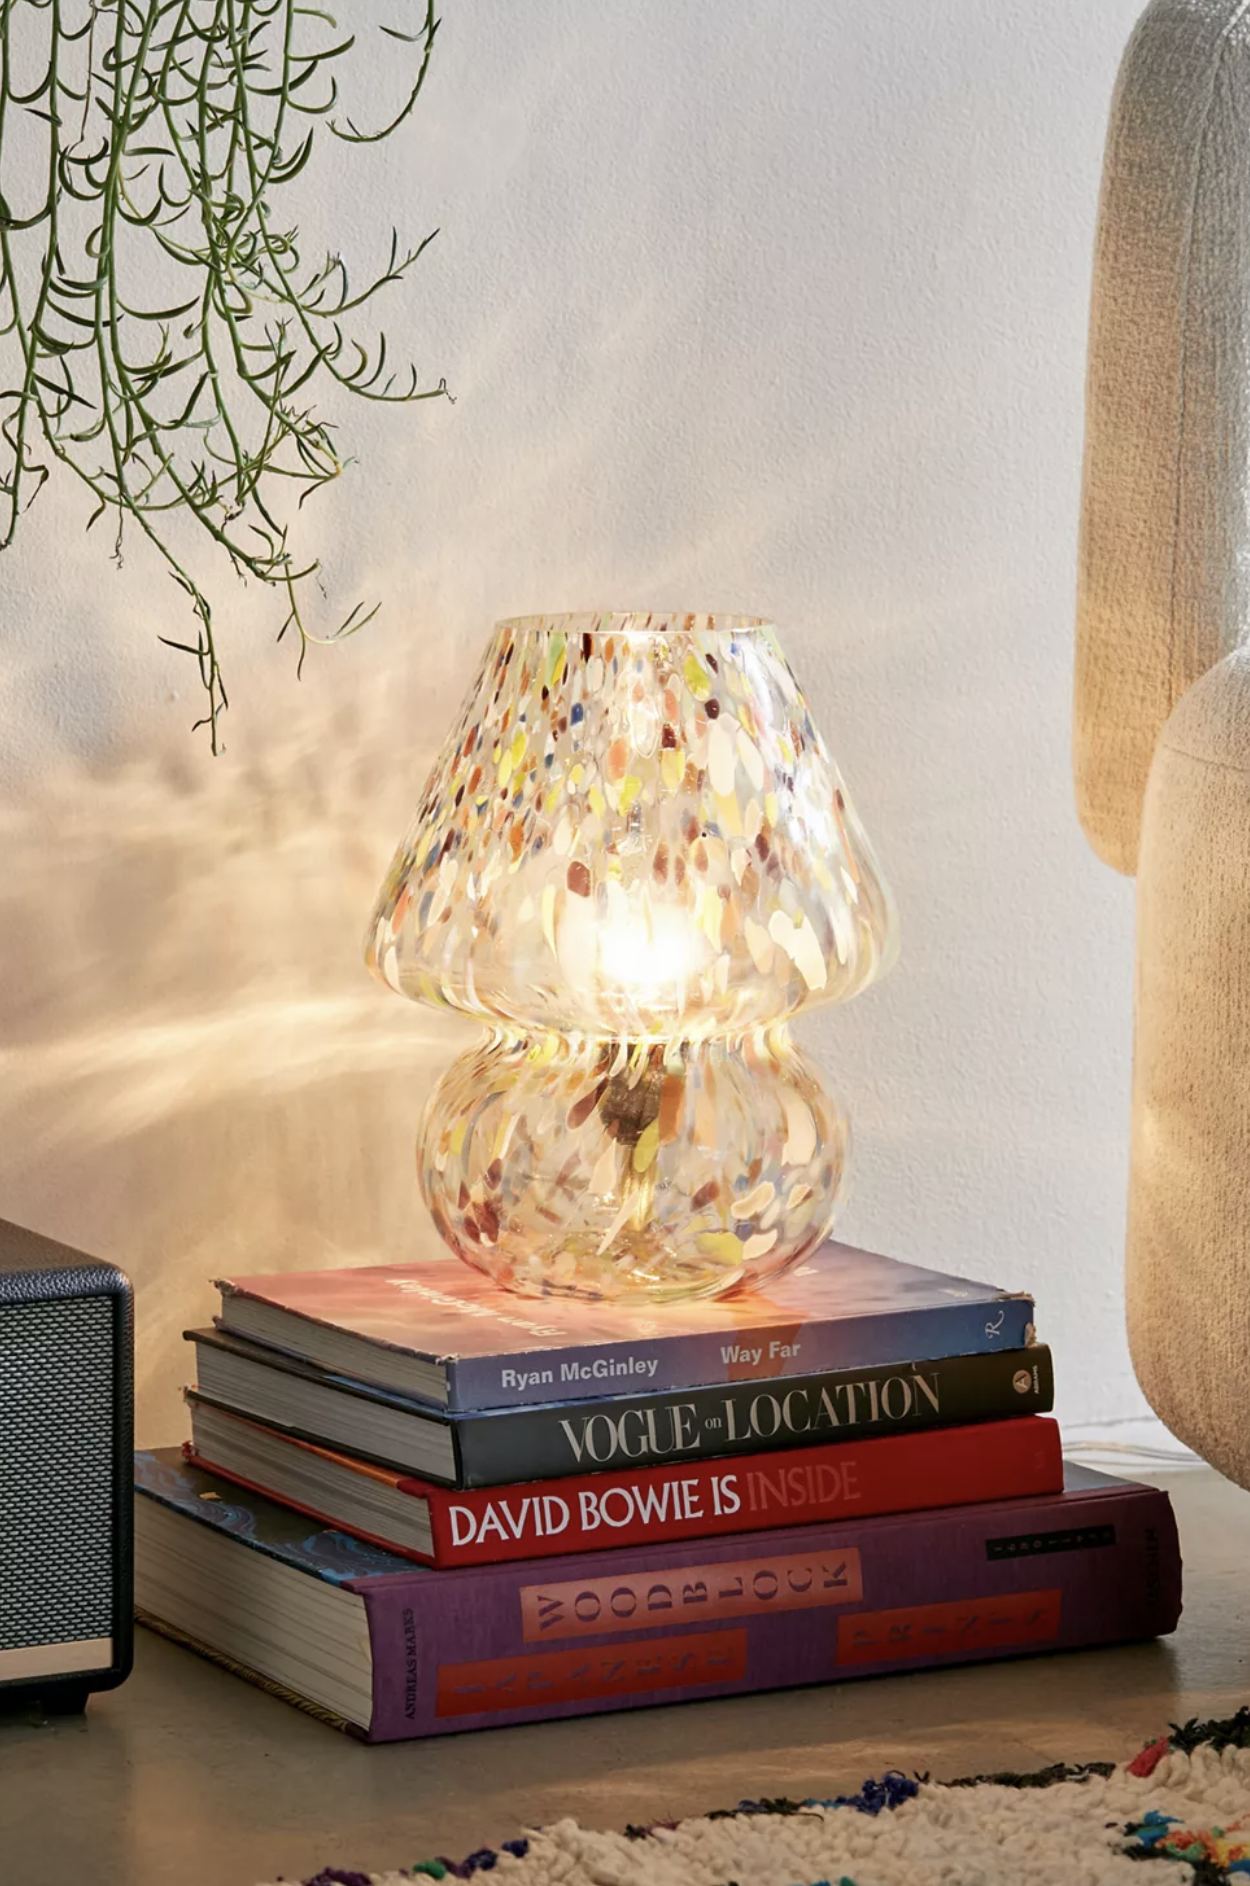 RETRO ROUND-UP: 70s Style Mushroom Lamps - Image via Urban Outfitters, feat. 'Confetti Glass Table Lamp'